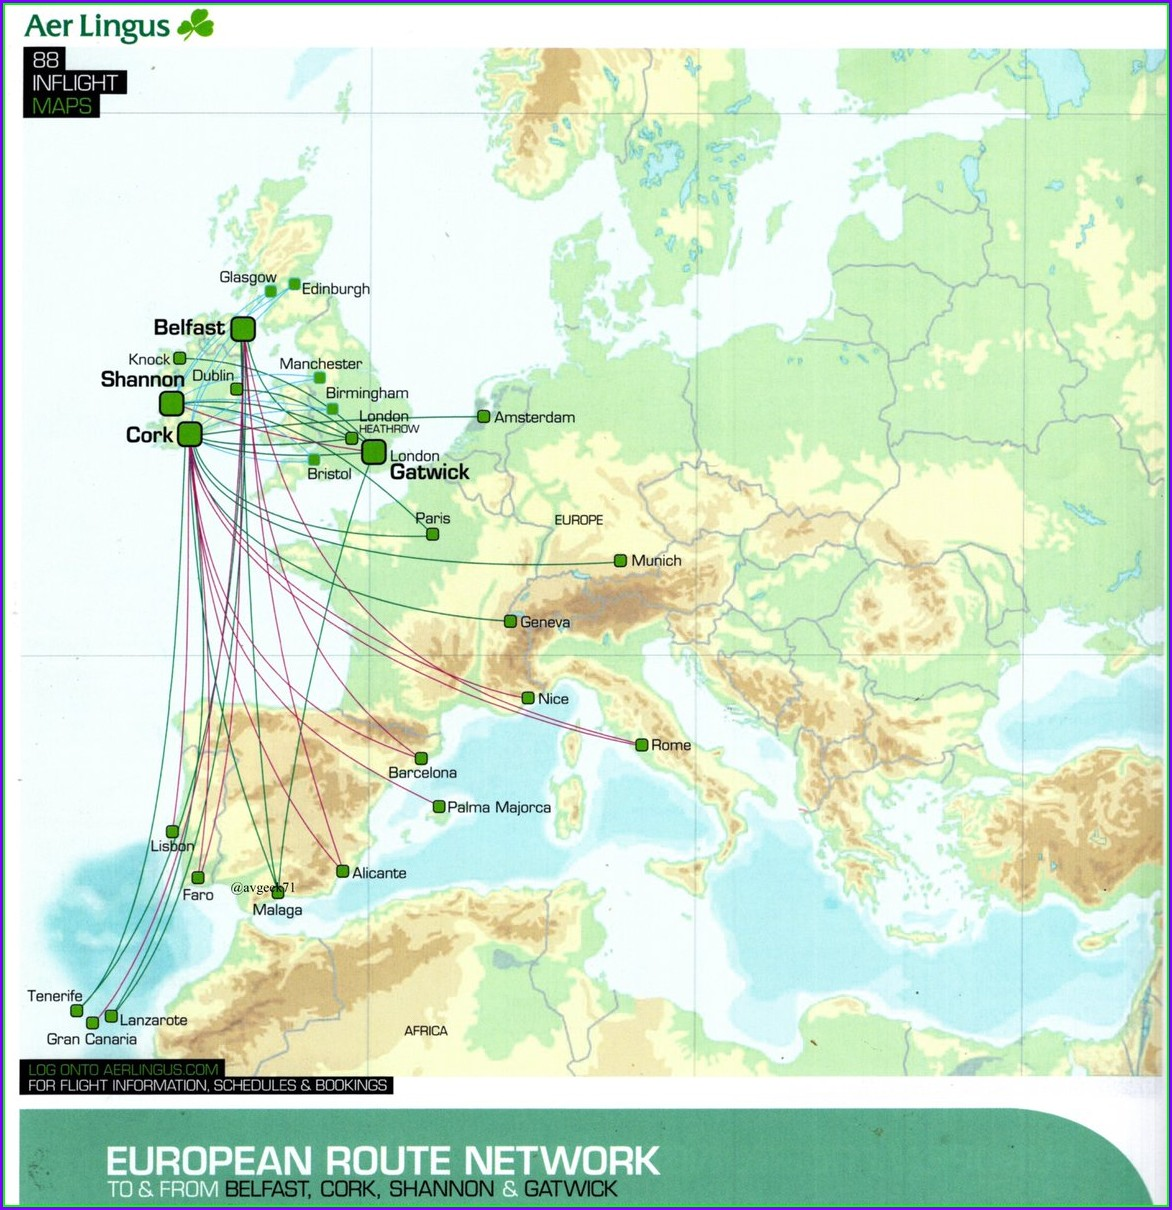 Aer Lingus Route Map 2019